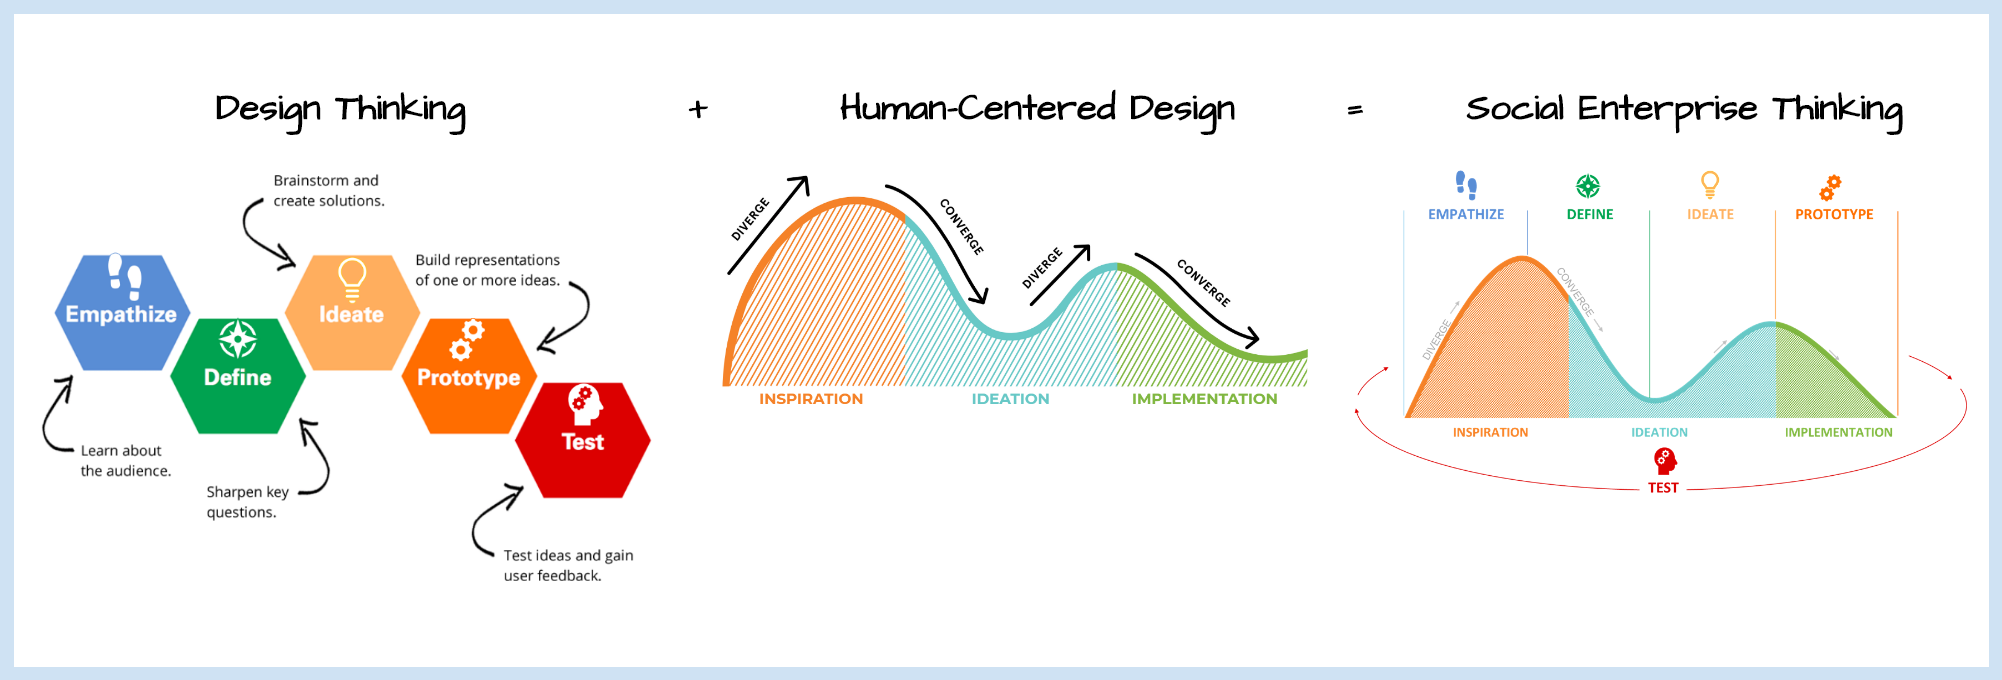 Using Design Thinking and Human Centered Design together